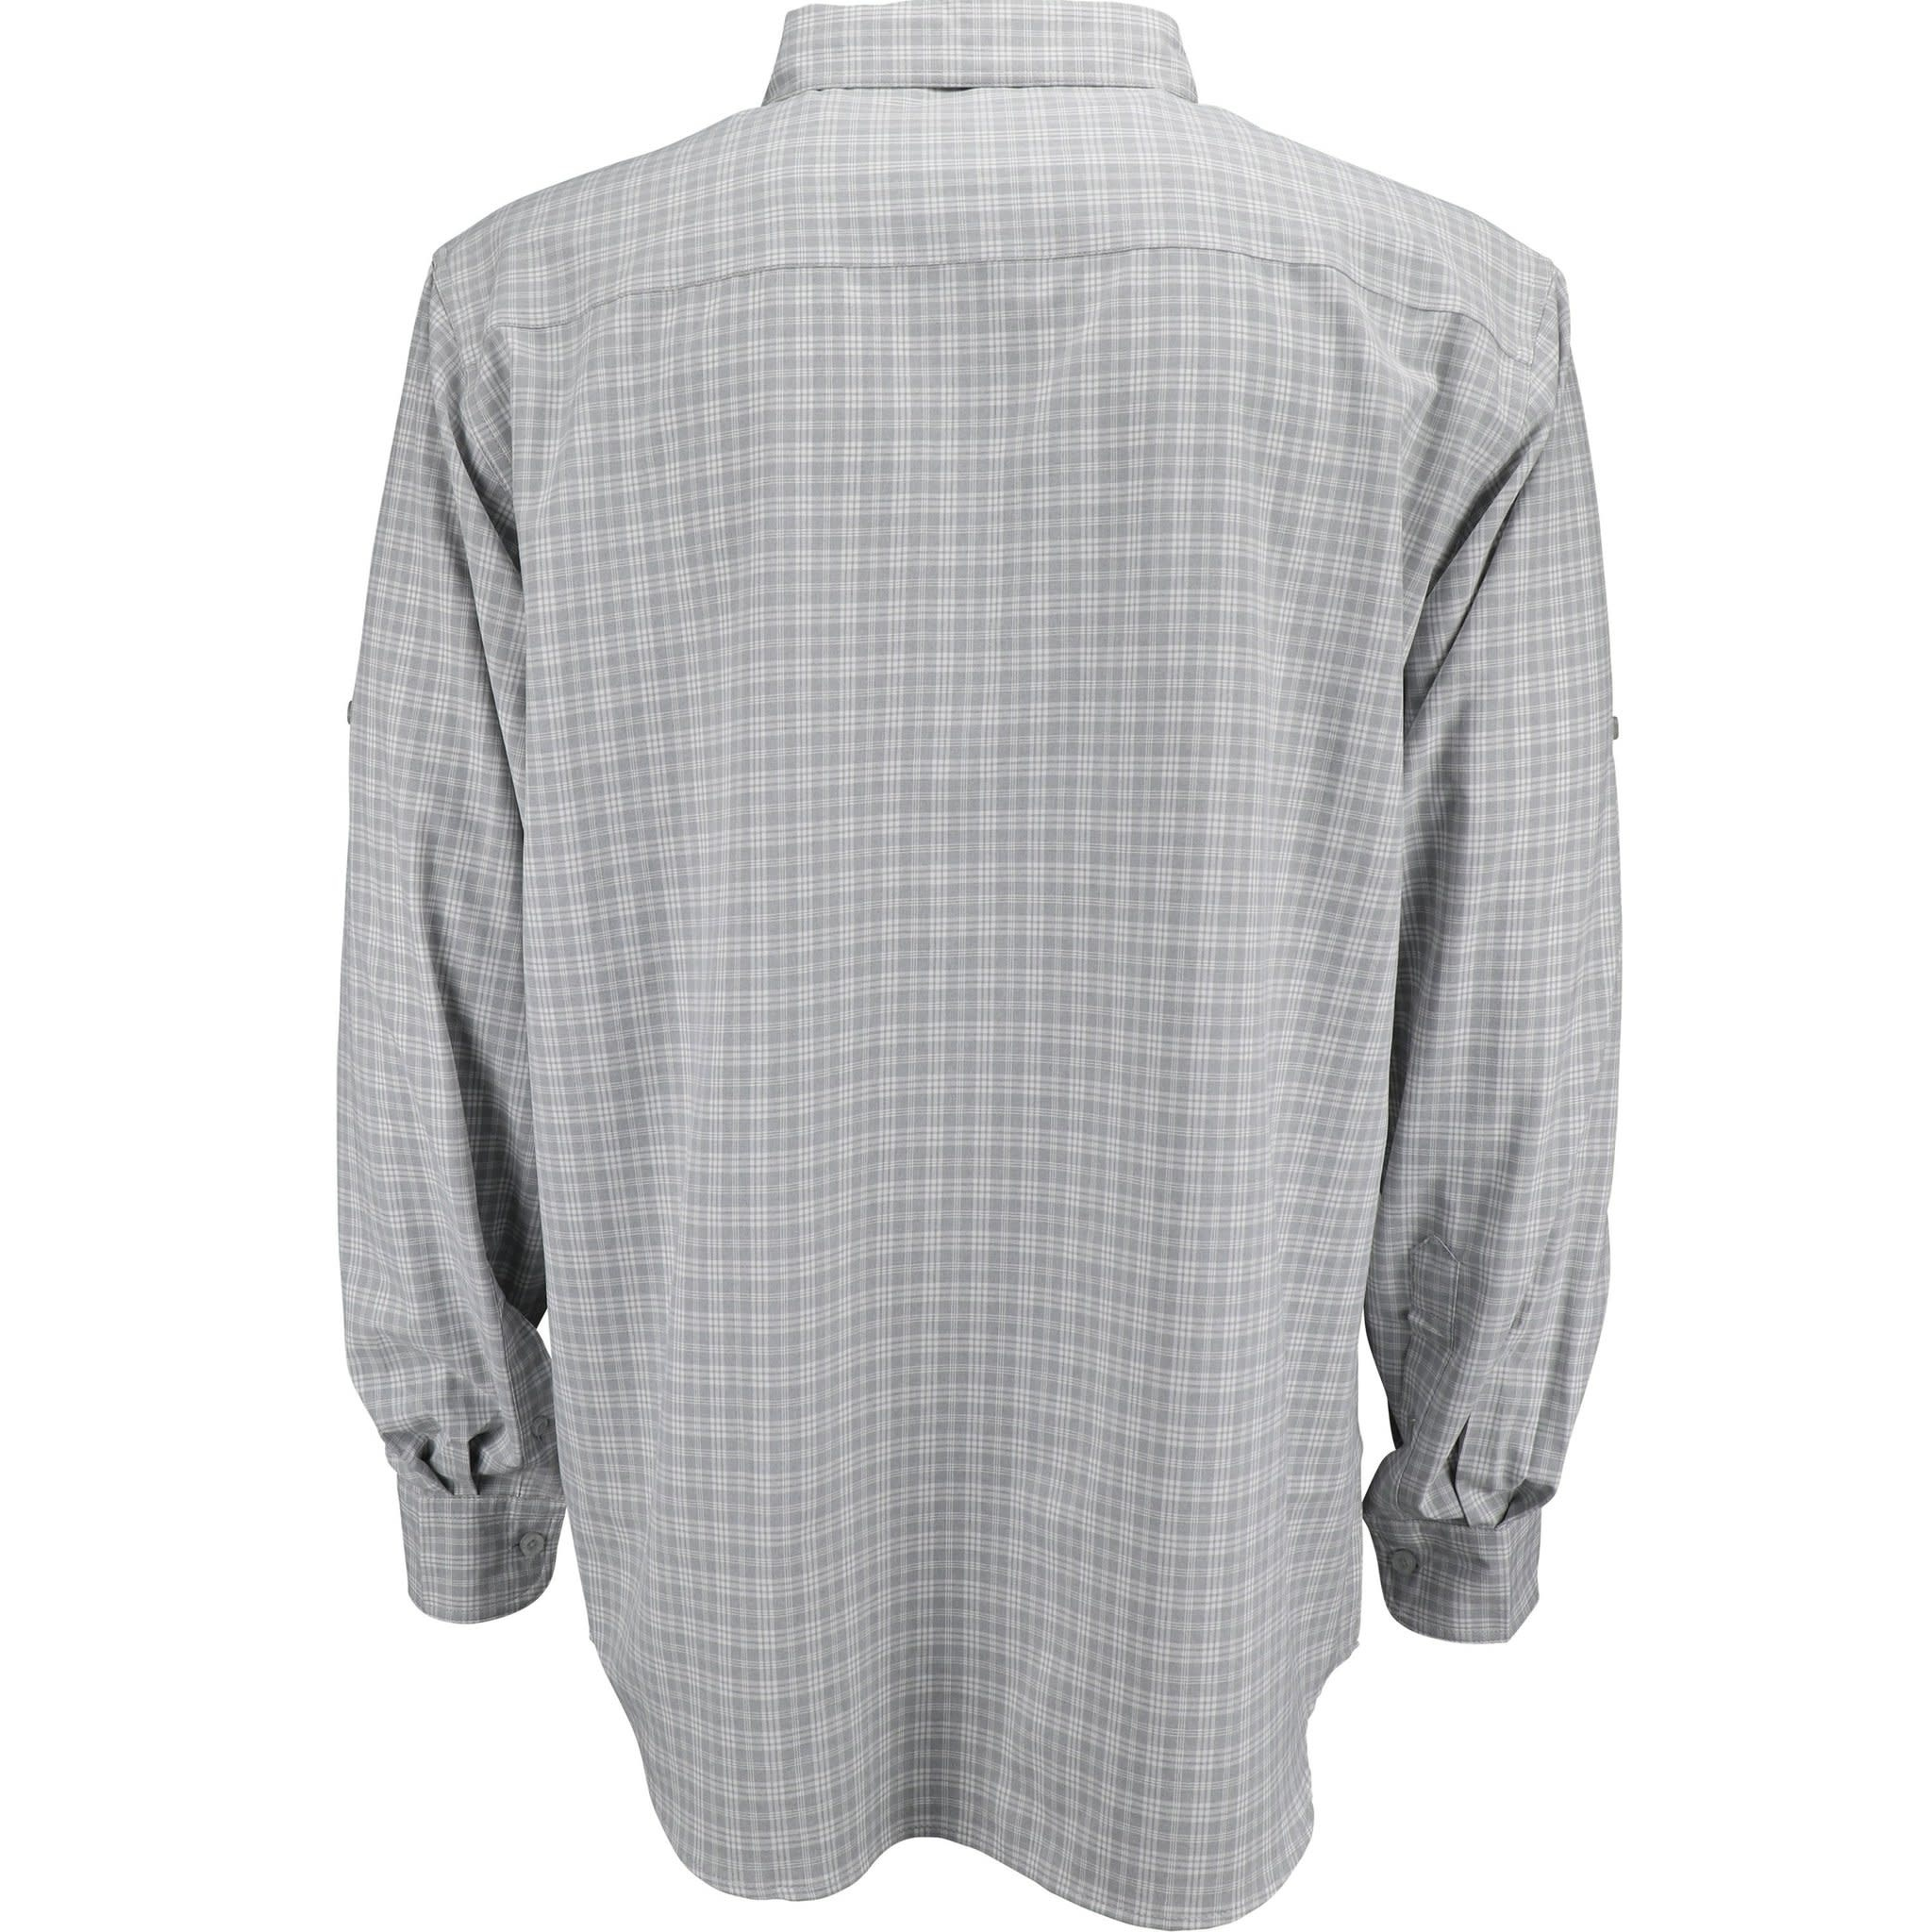 AFTCO Dorsal L/S Button Down Shirt